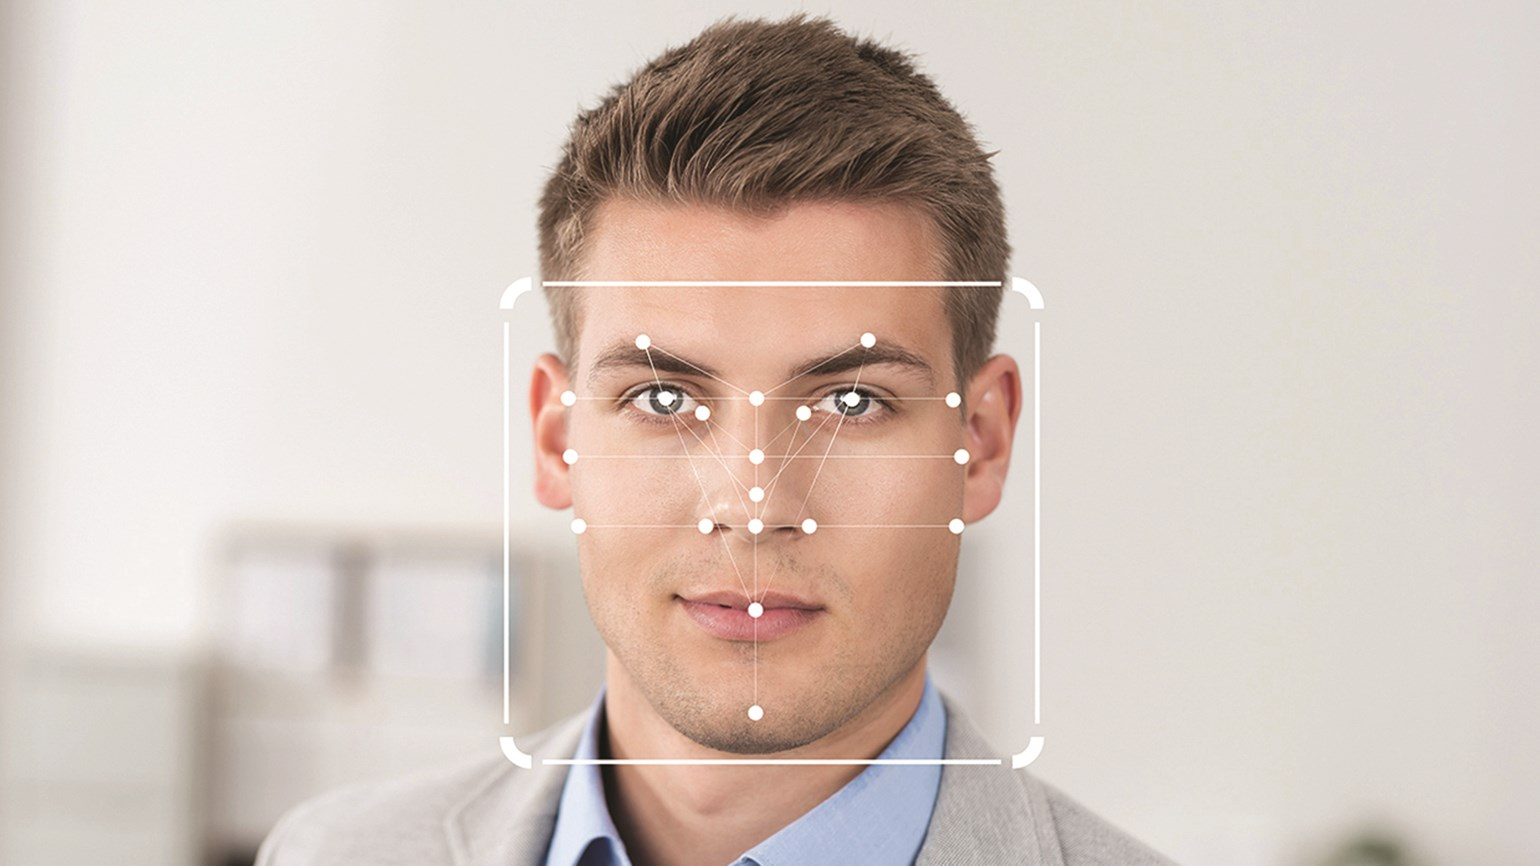 Biometrics Facial Recognition Tech Coming To An Airport